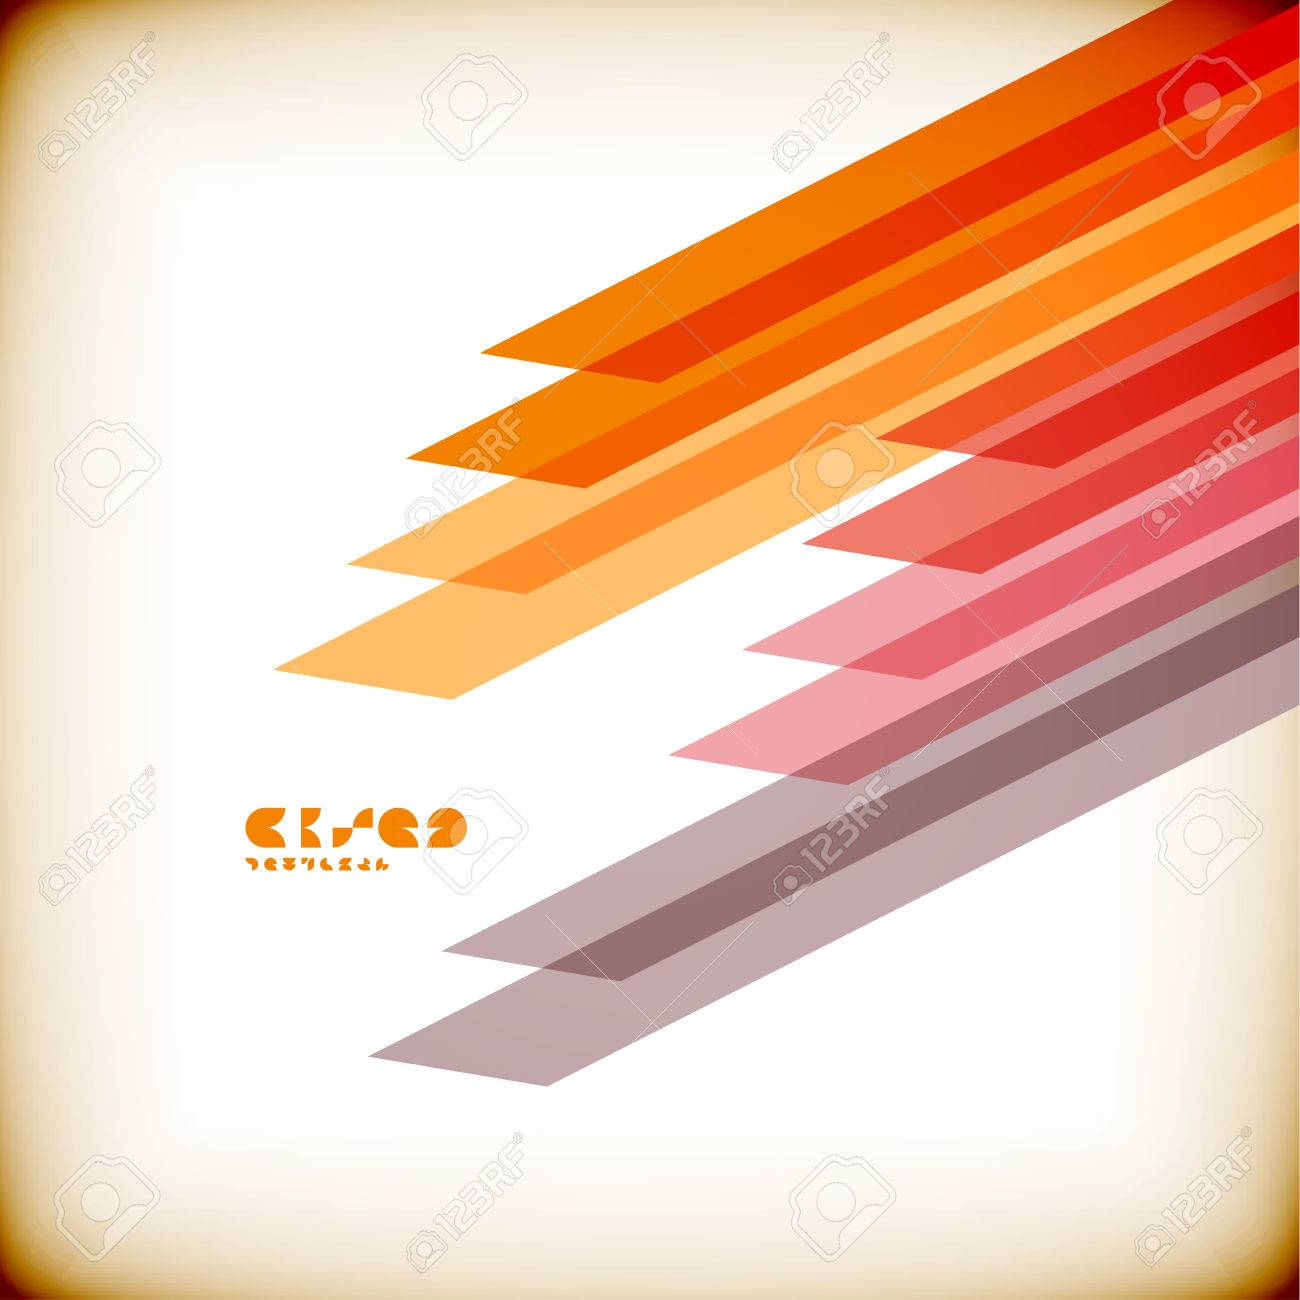 Vintage straight lines design template Stock Vector - 22799567